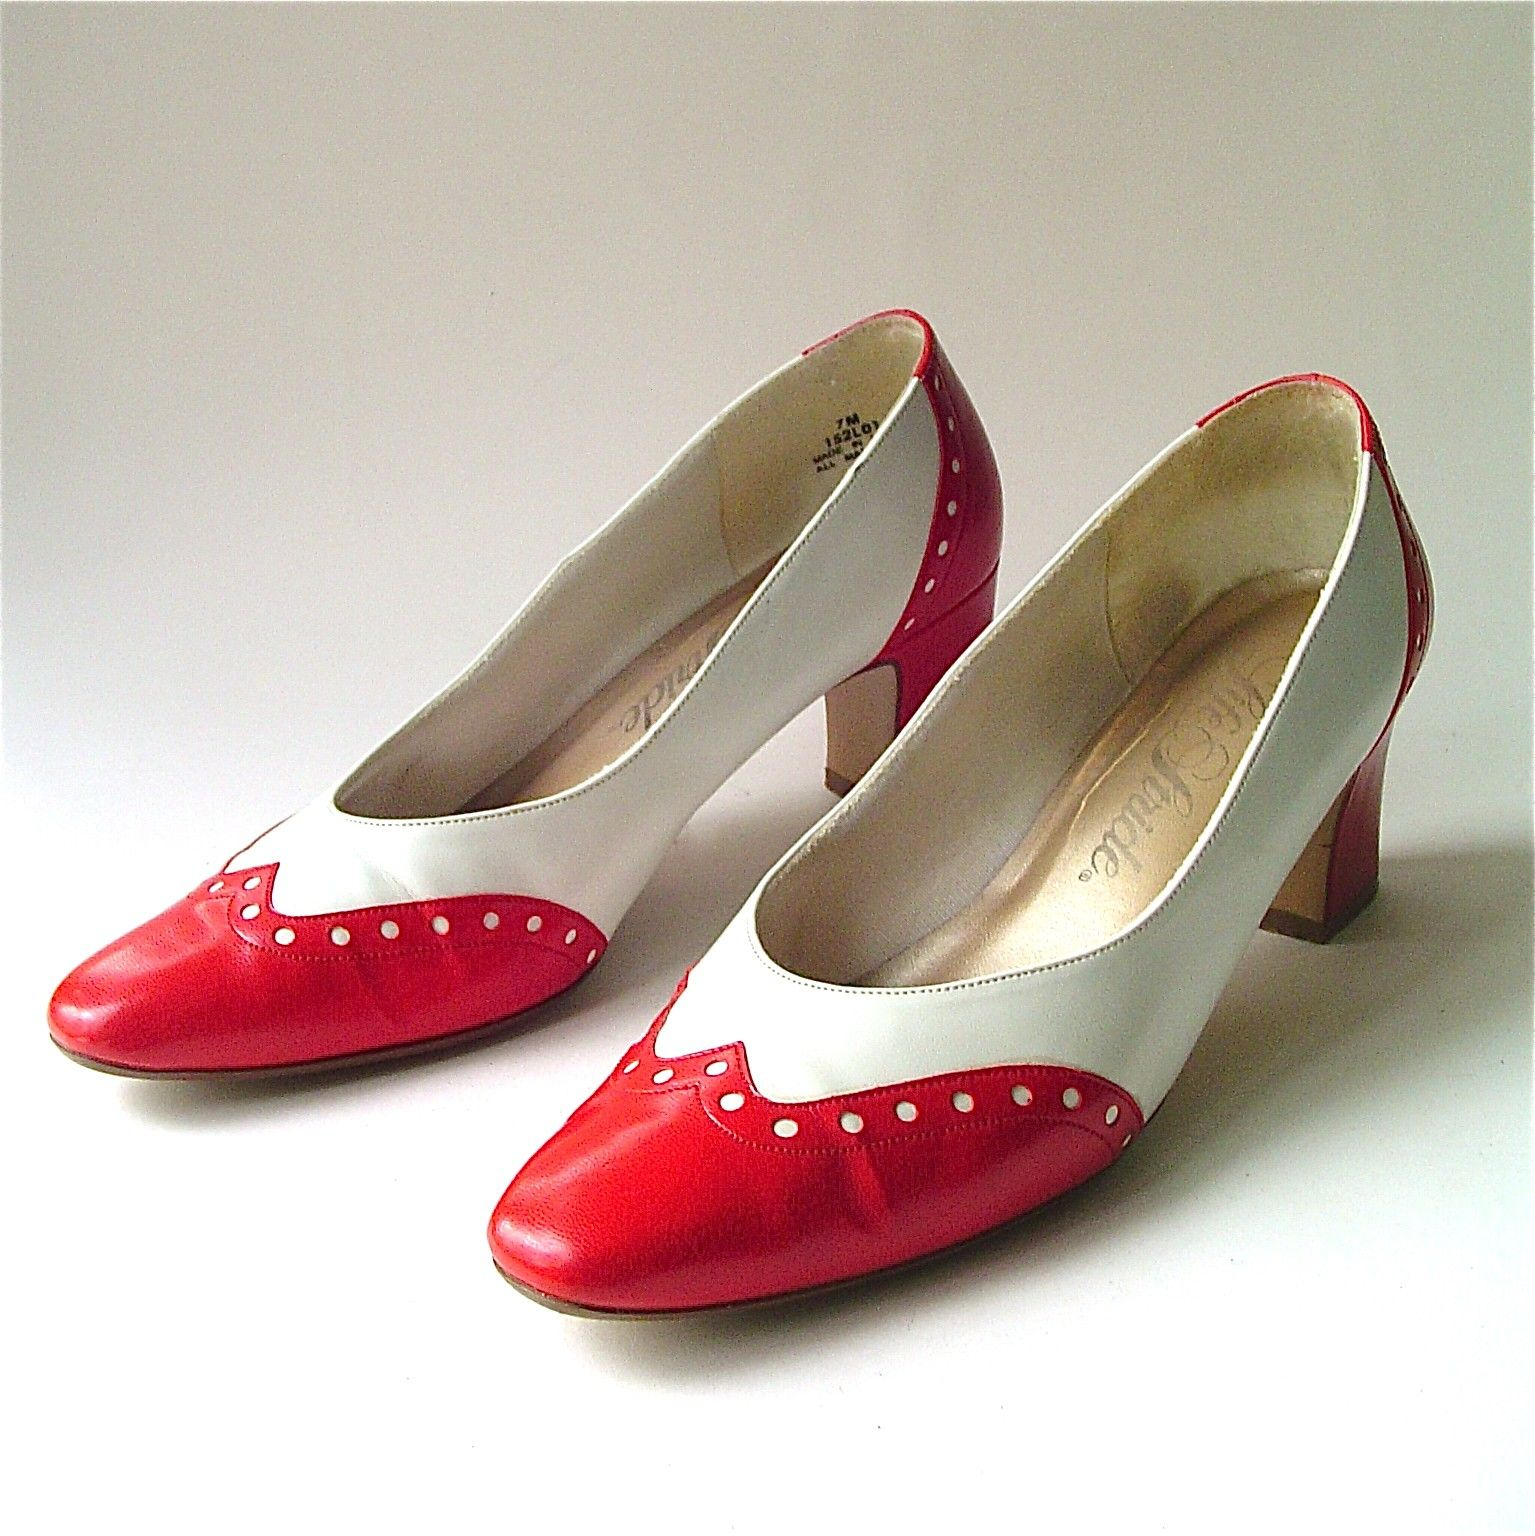 4bfa940fa4c12 vintage spectator pumps | vintage Red and White Spectator Pumps by ...